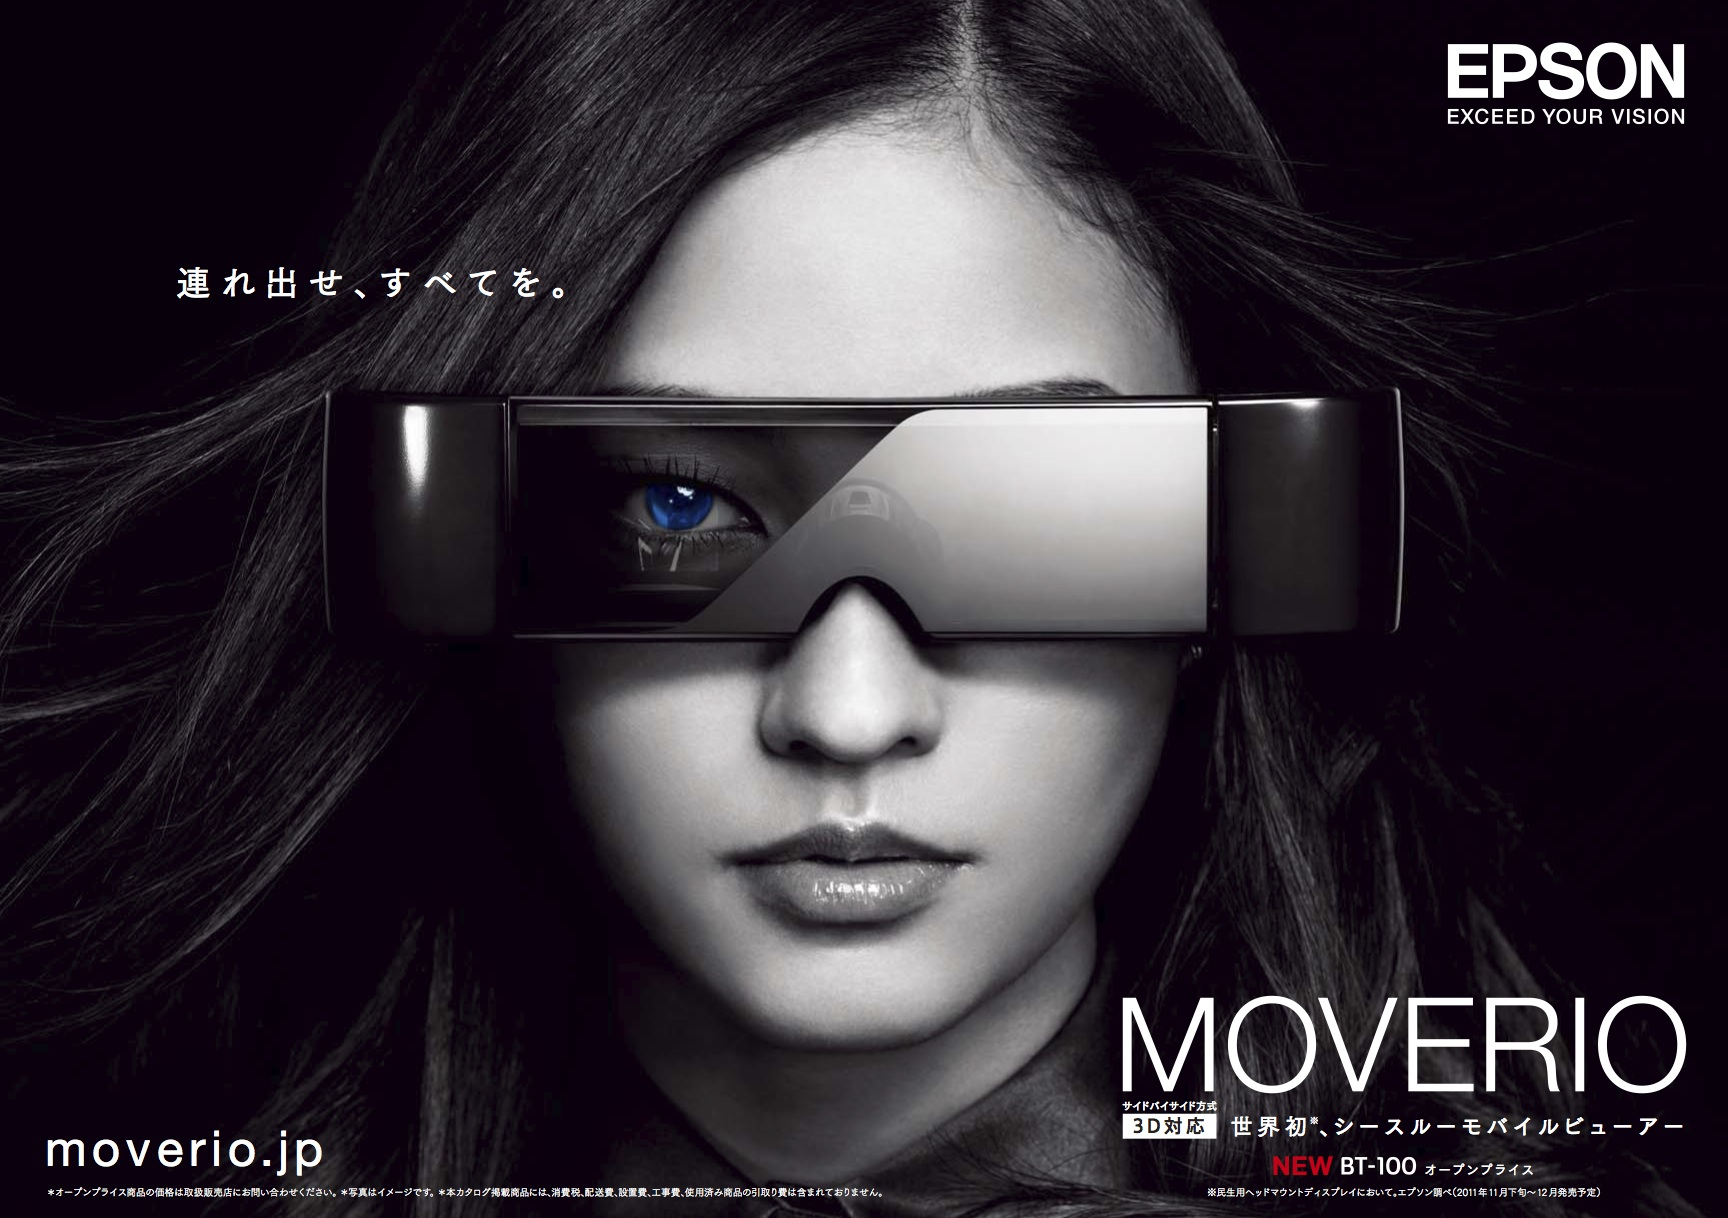 epson moverio bt-100 android